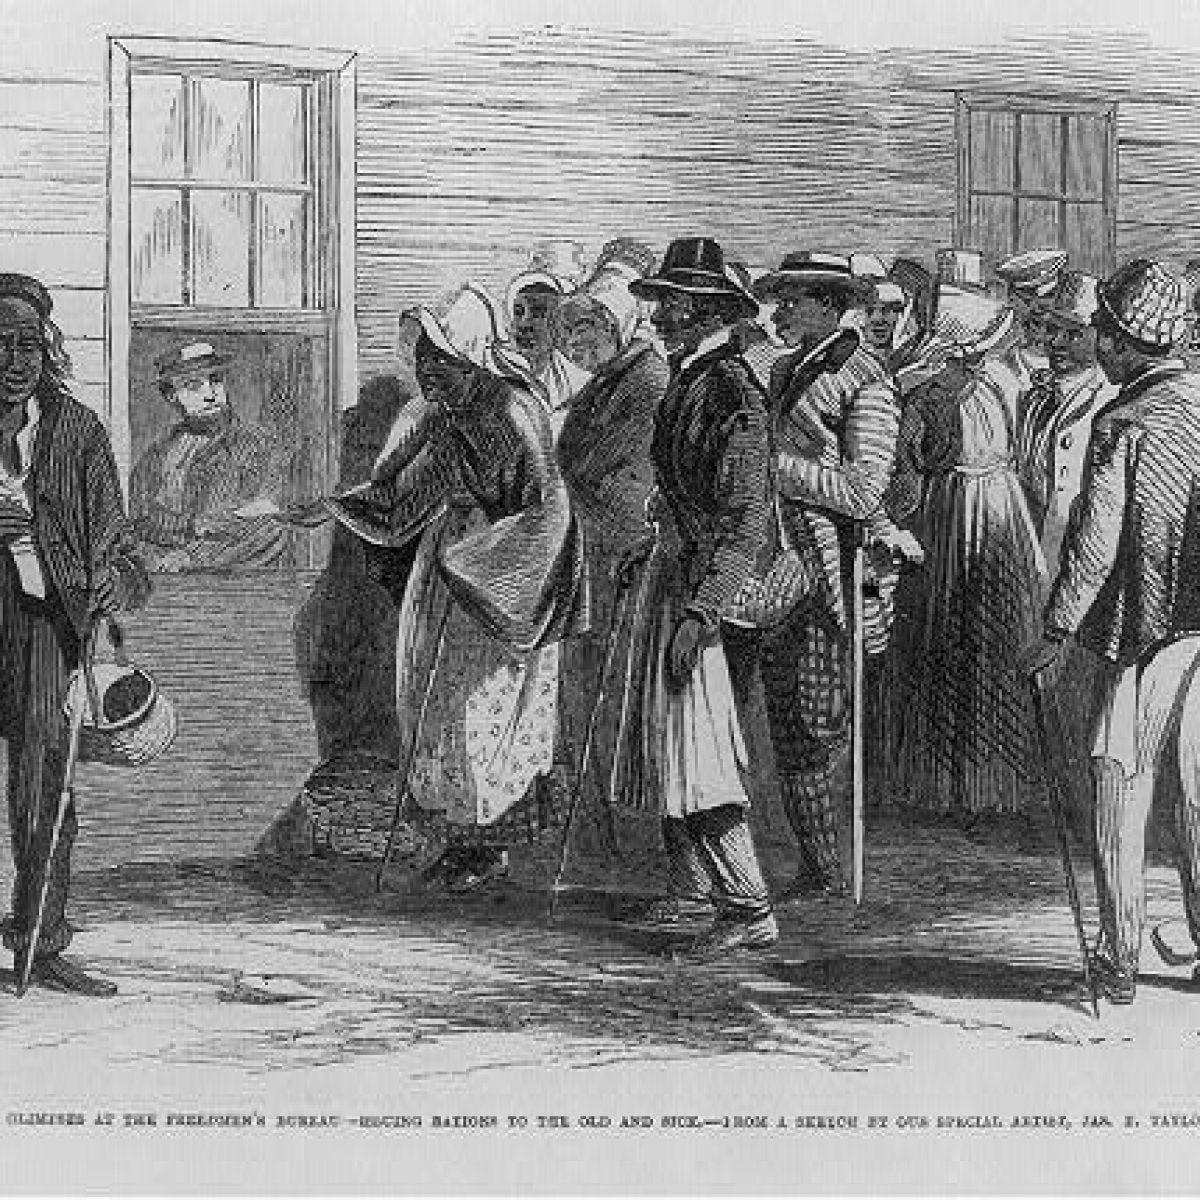 Ancestry.com Launches New Freedmen's Bureau Records To Help Black Americans Better Trace Their Roots